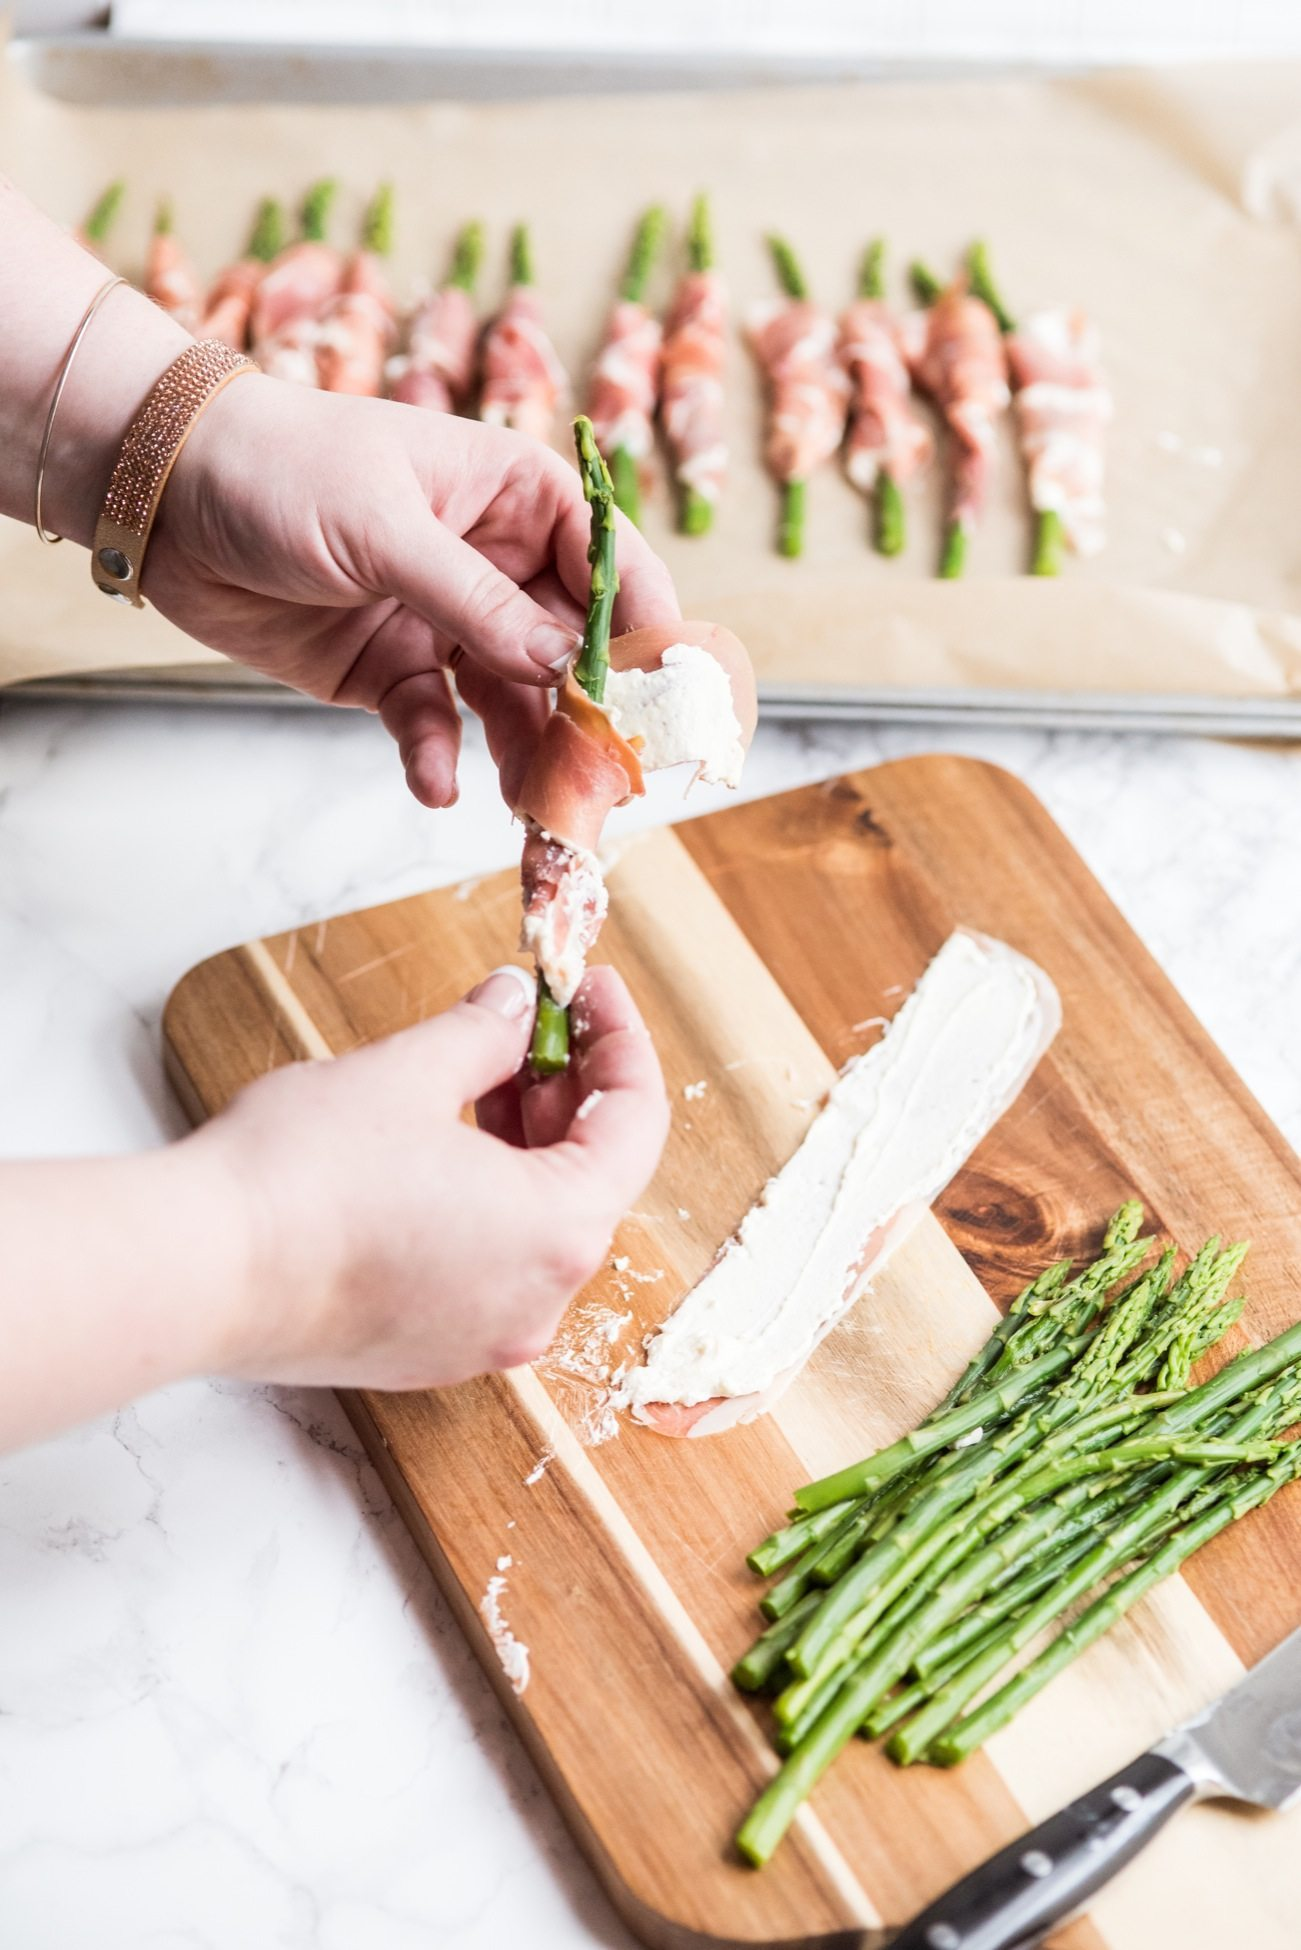 Prosciutto Wrapped Asparagus Recipe | Easy party appetizers, cocktail recipes, entertaining tips, party ideas and more from @cydconverse